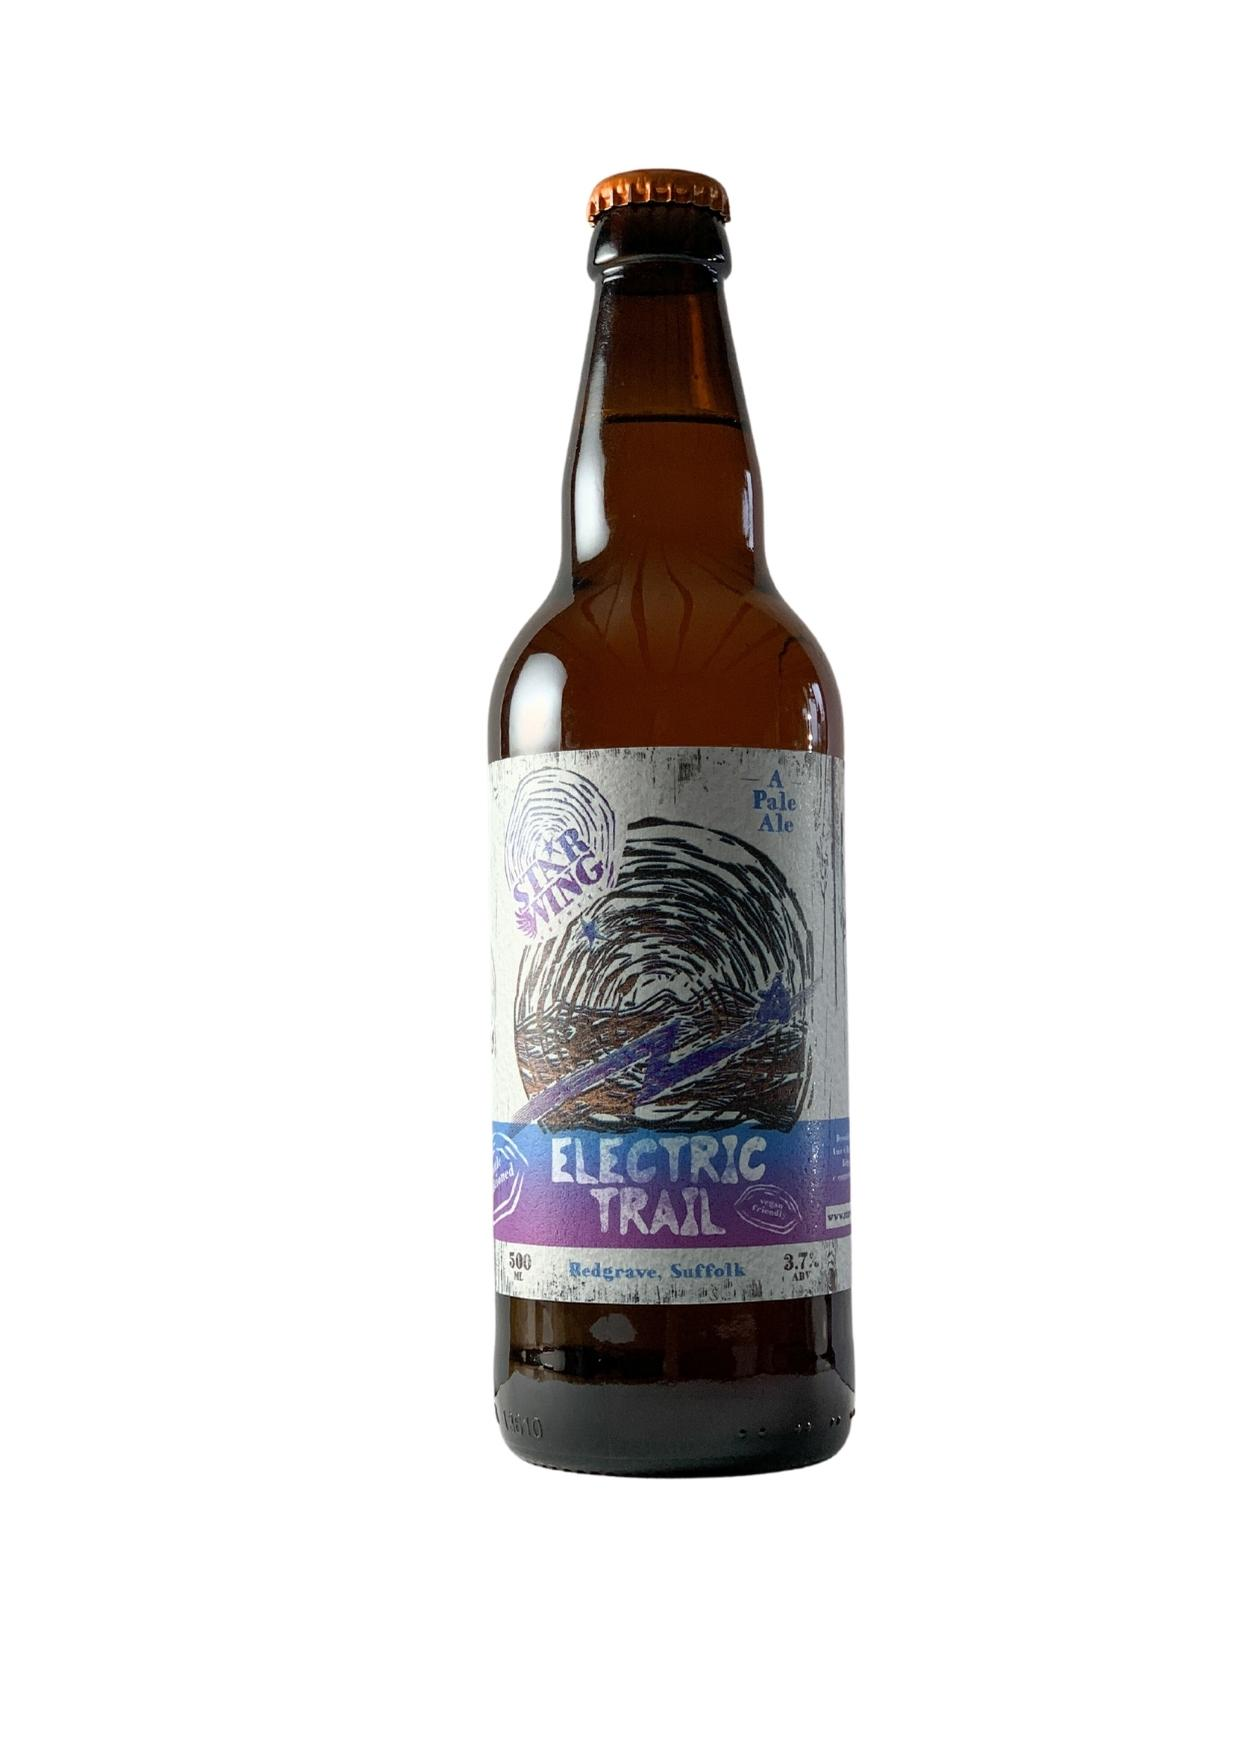 A 500ml bottle of delicious Star Wing Brewery's Electric Trail, 3.7% Pale Ale